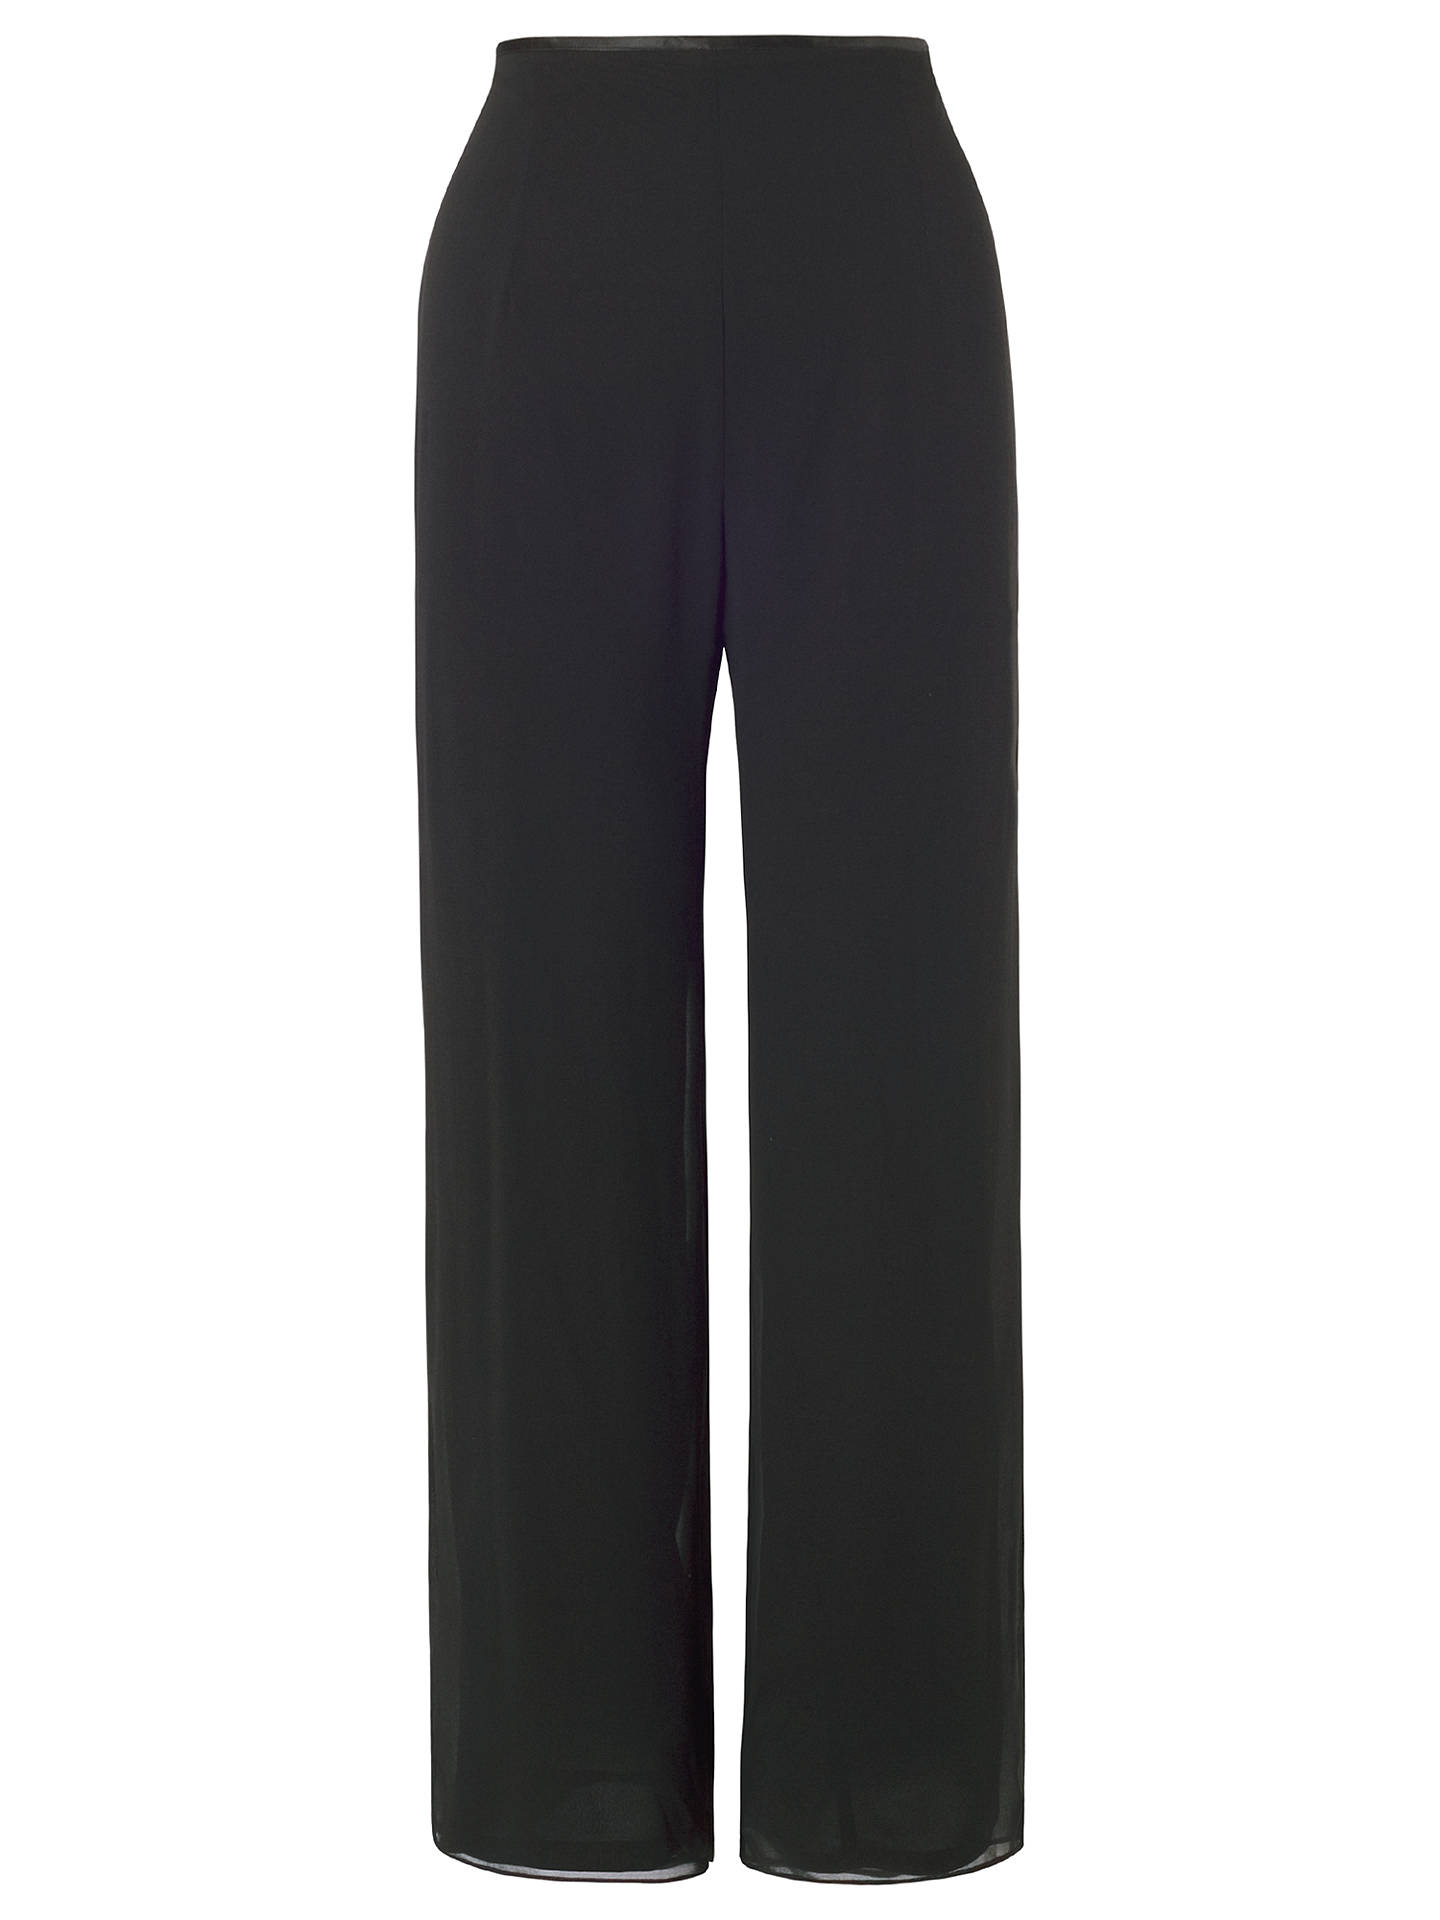 BuyChesca Satin Trim Chiffon Trousers, Black, 12 Online at johnlewis.com